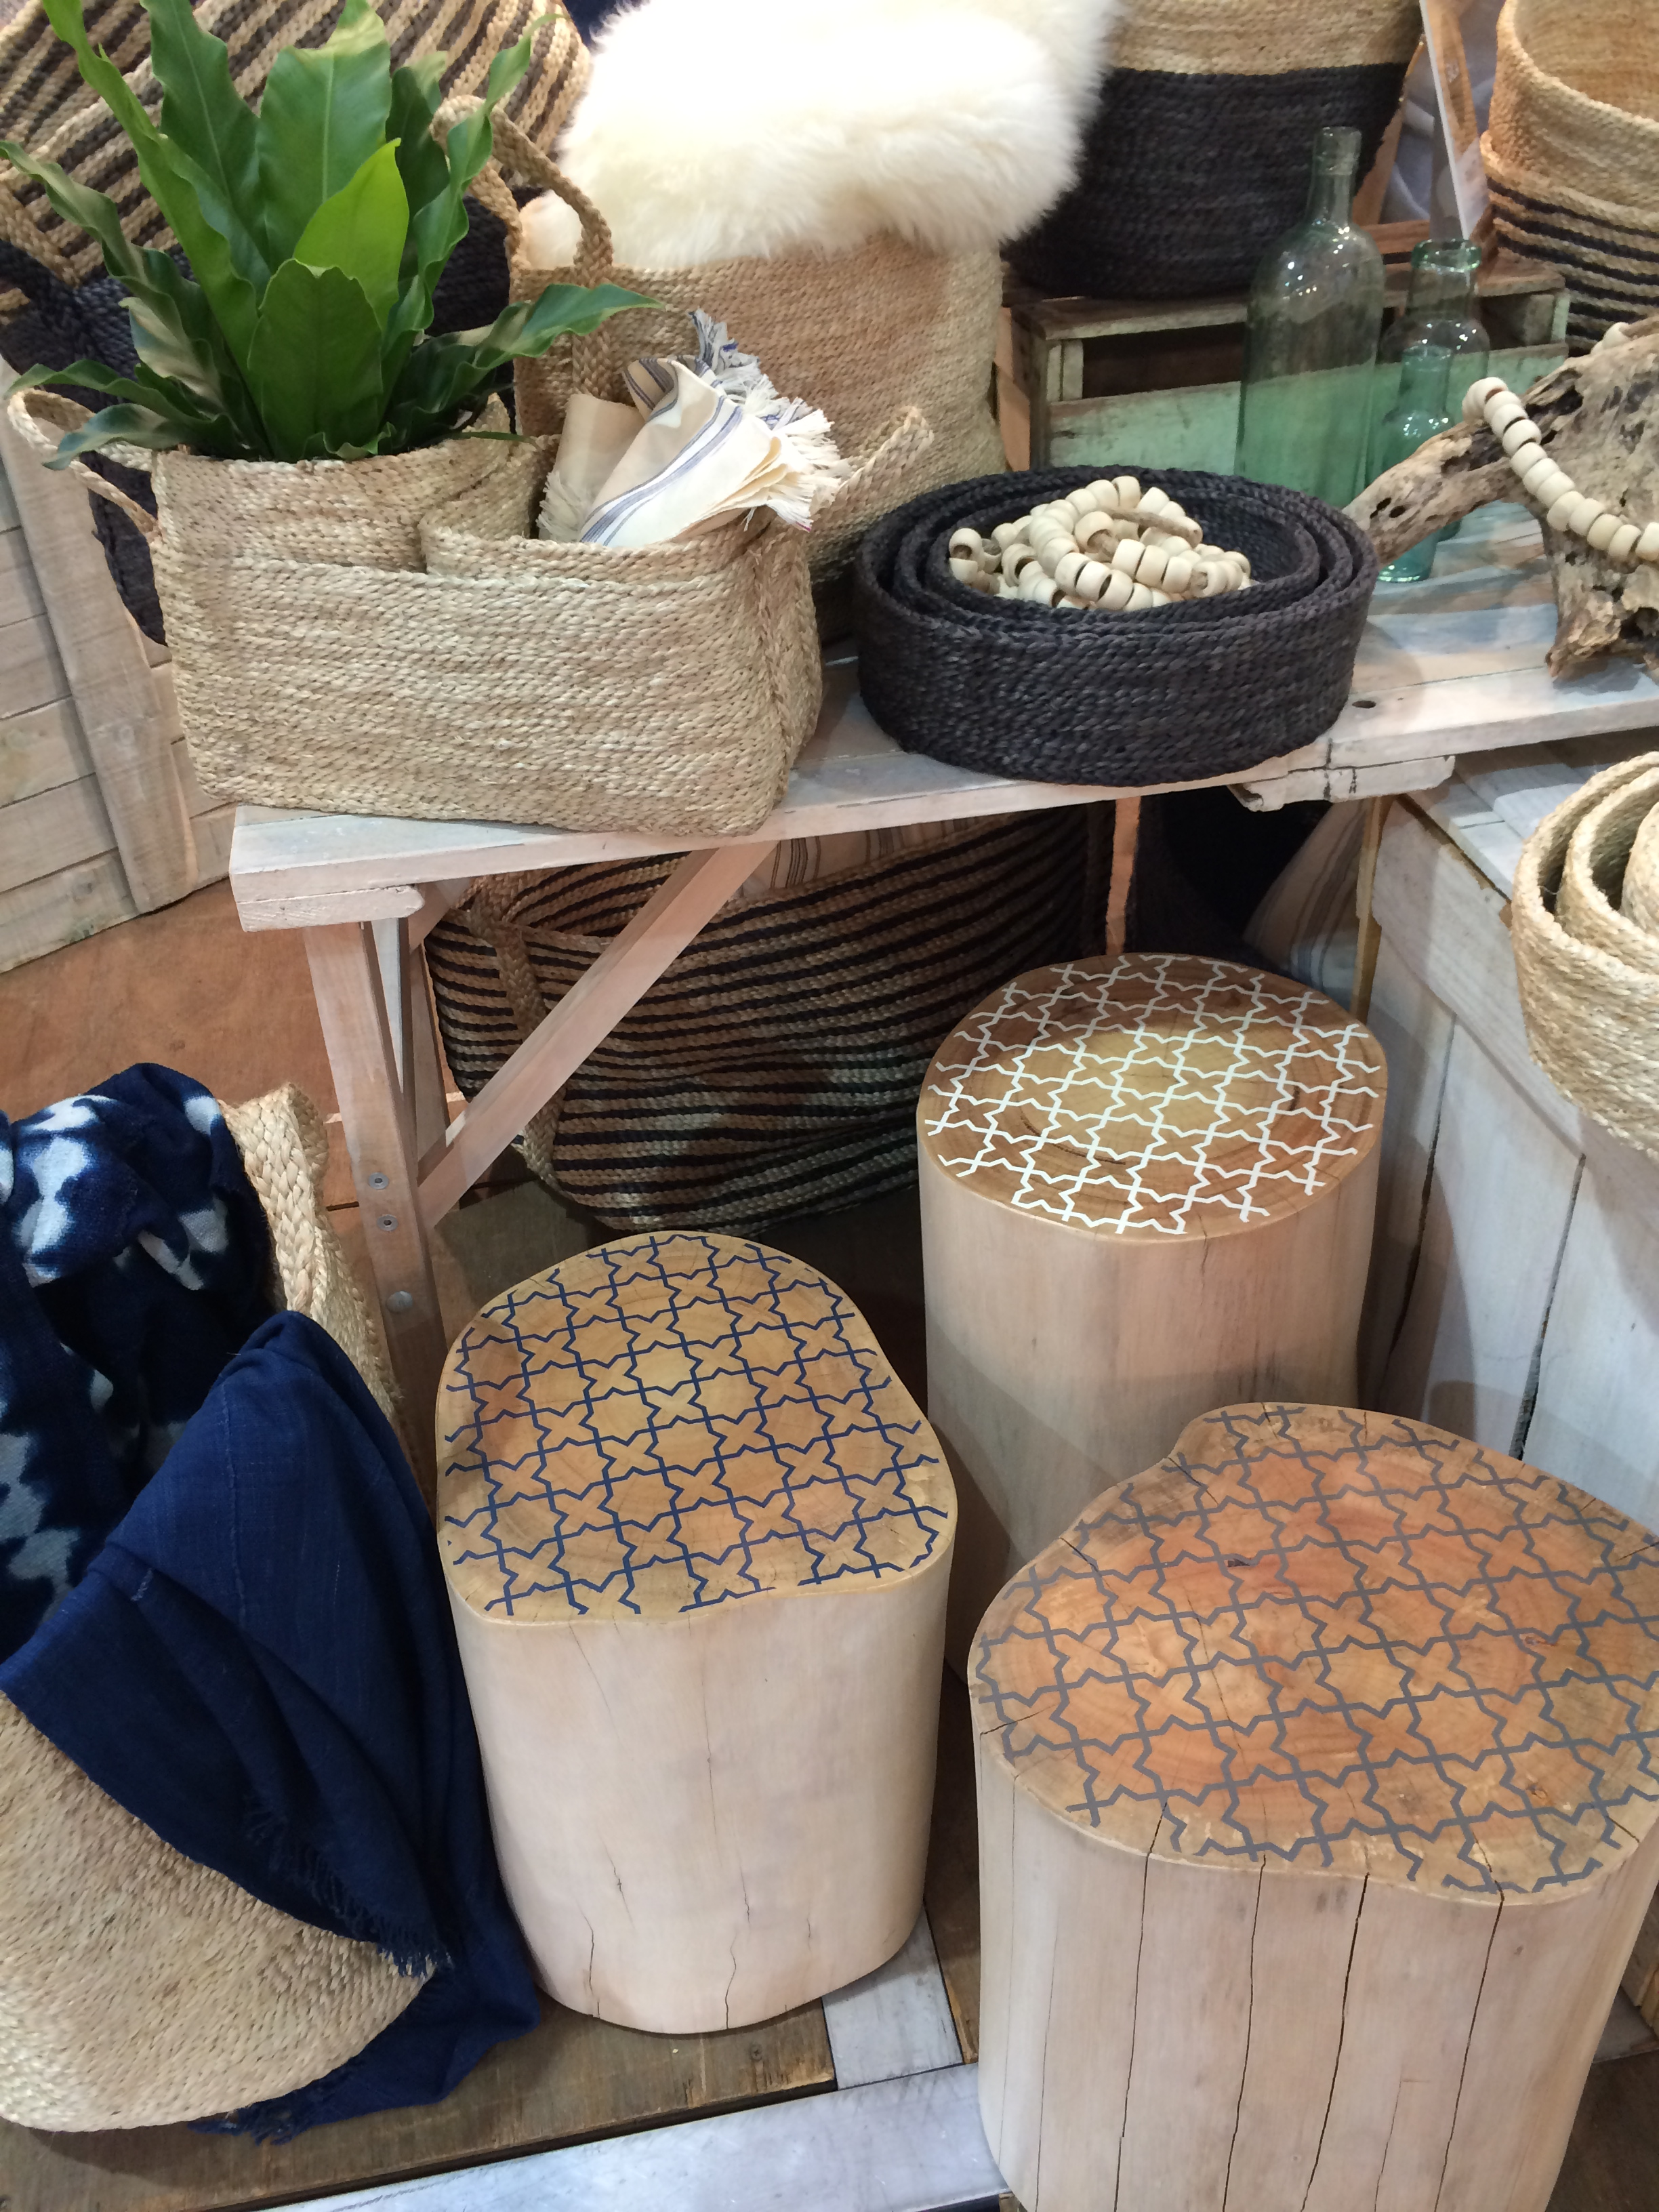 Amazing new stools from The Dharma Door